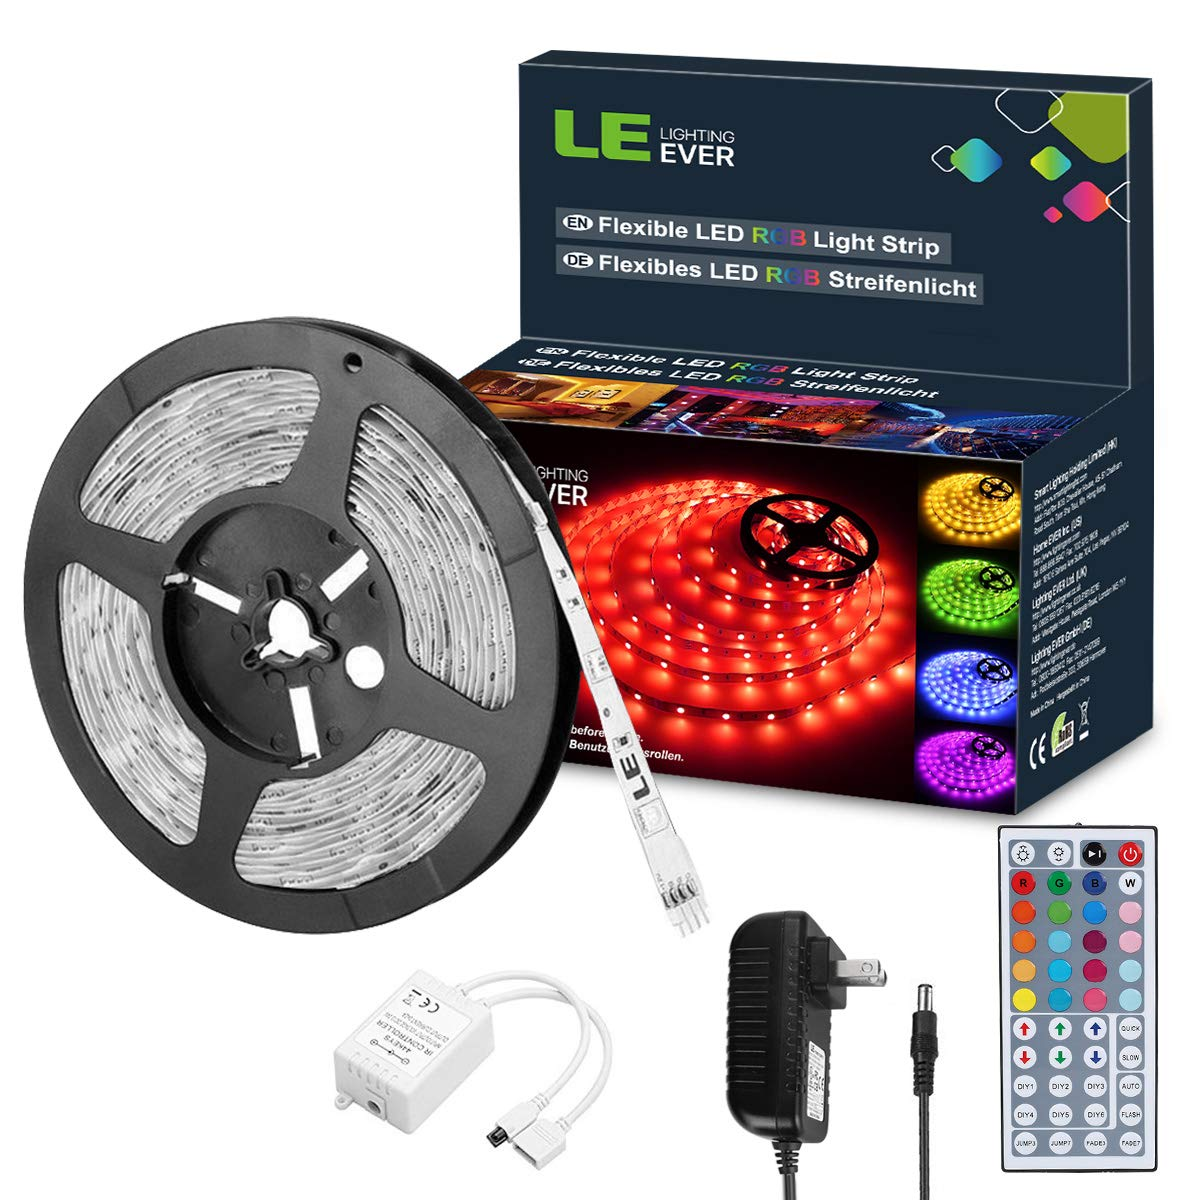 LE 12V LED Strip Light Kit, 150 Units SMD 5050, 16.4ft Ribbon Light Kit with Remote Controller, for Home, Kitchen, Bedroom, Under Cabinet and More, Power Adapter Included, RGB